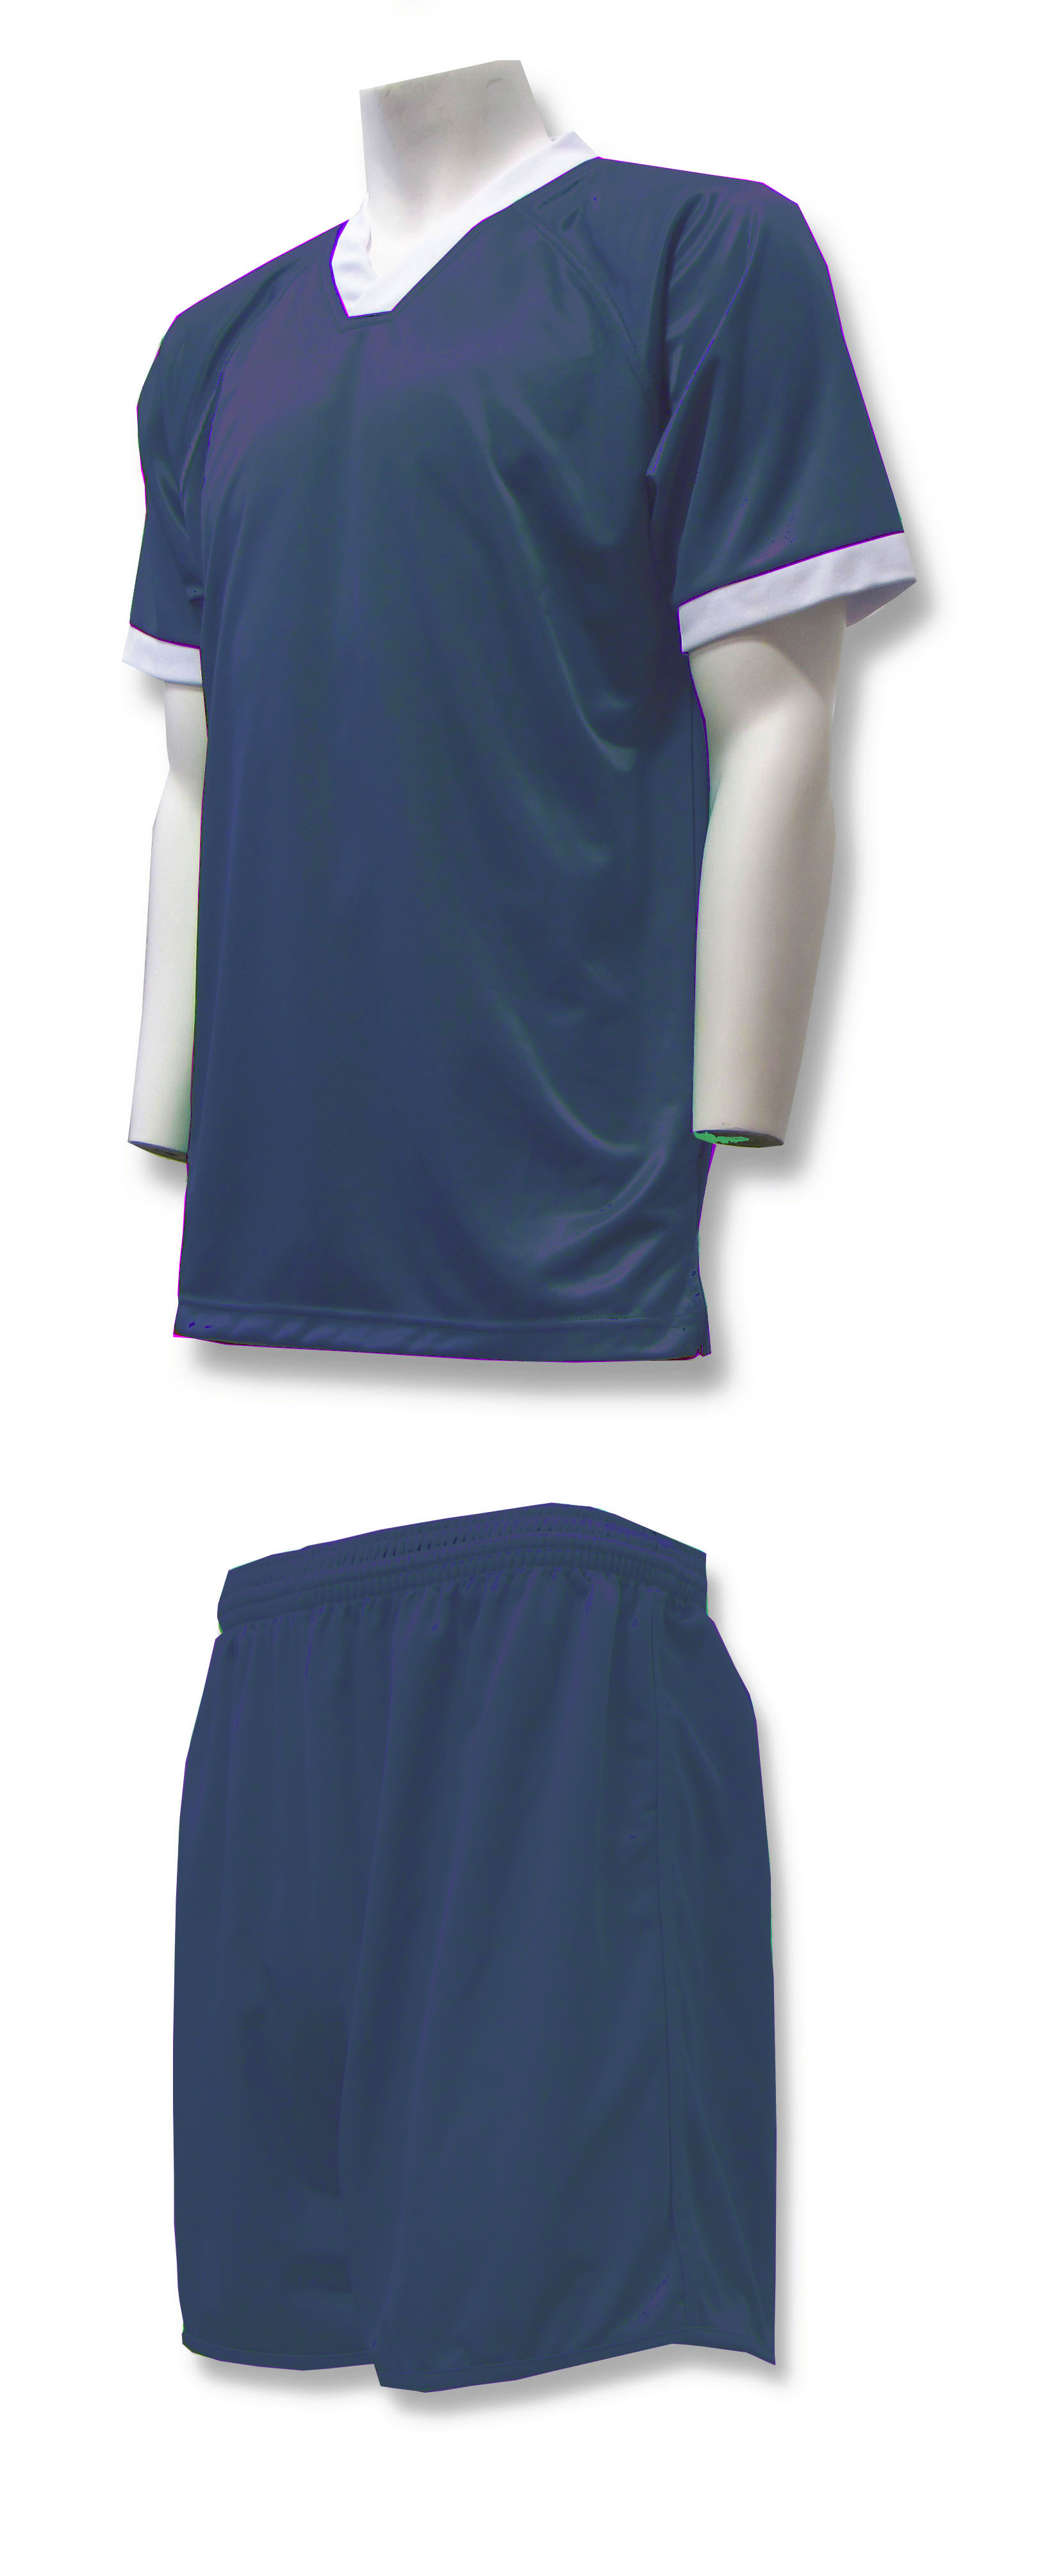 Forza soccer uniform kit in navy by Code Four Athletics